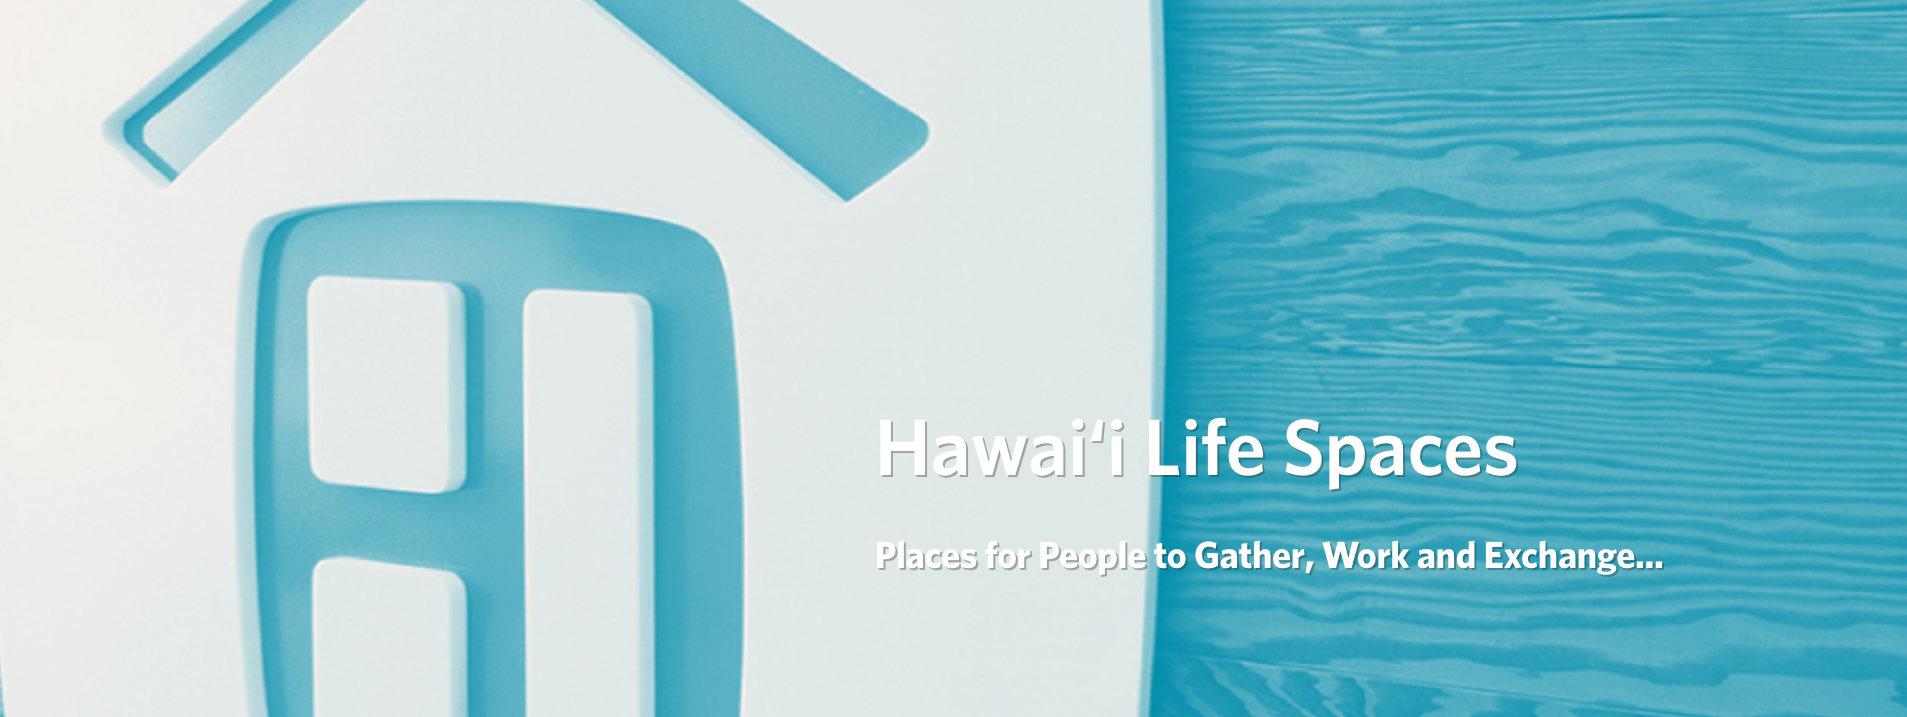 Hawaii life real estate brokers in princeville hi 800 for Hawaii life real estate brokers